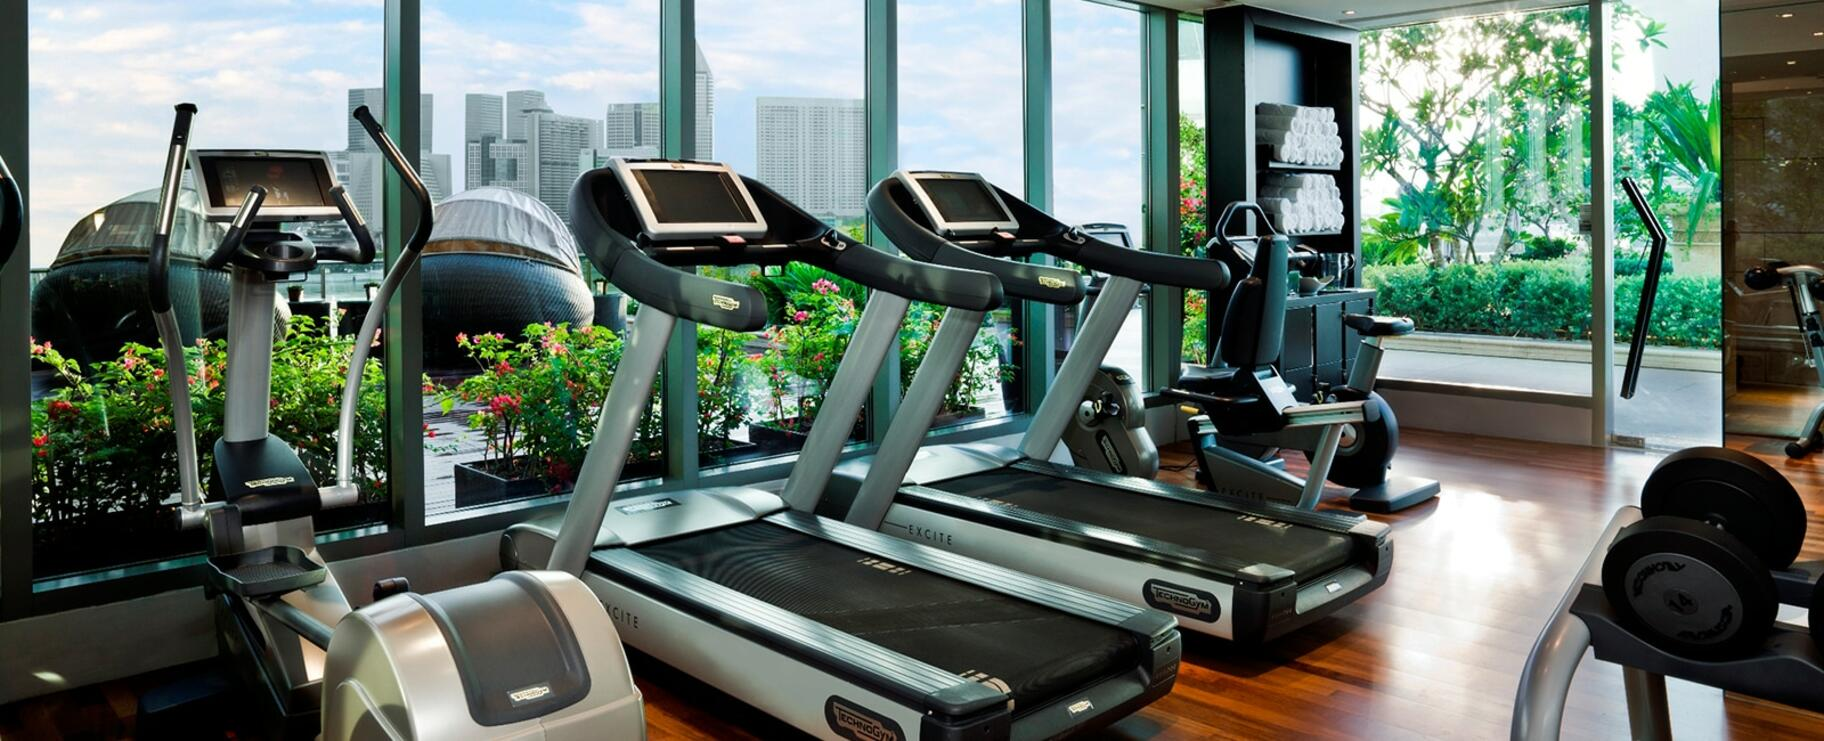 The treadmill machines at the gym and fitness center